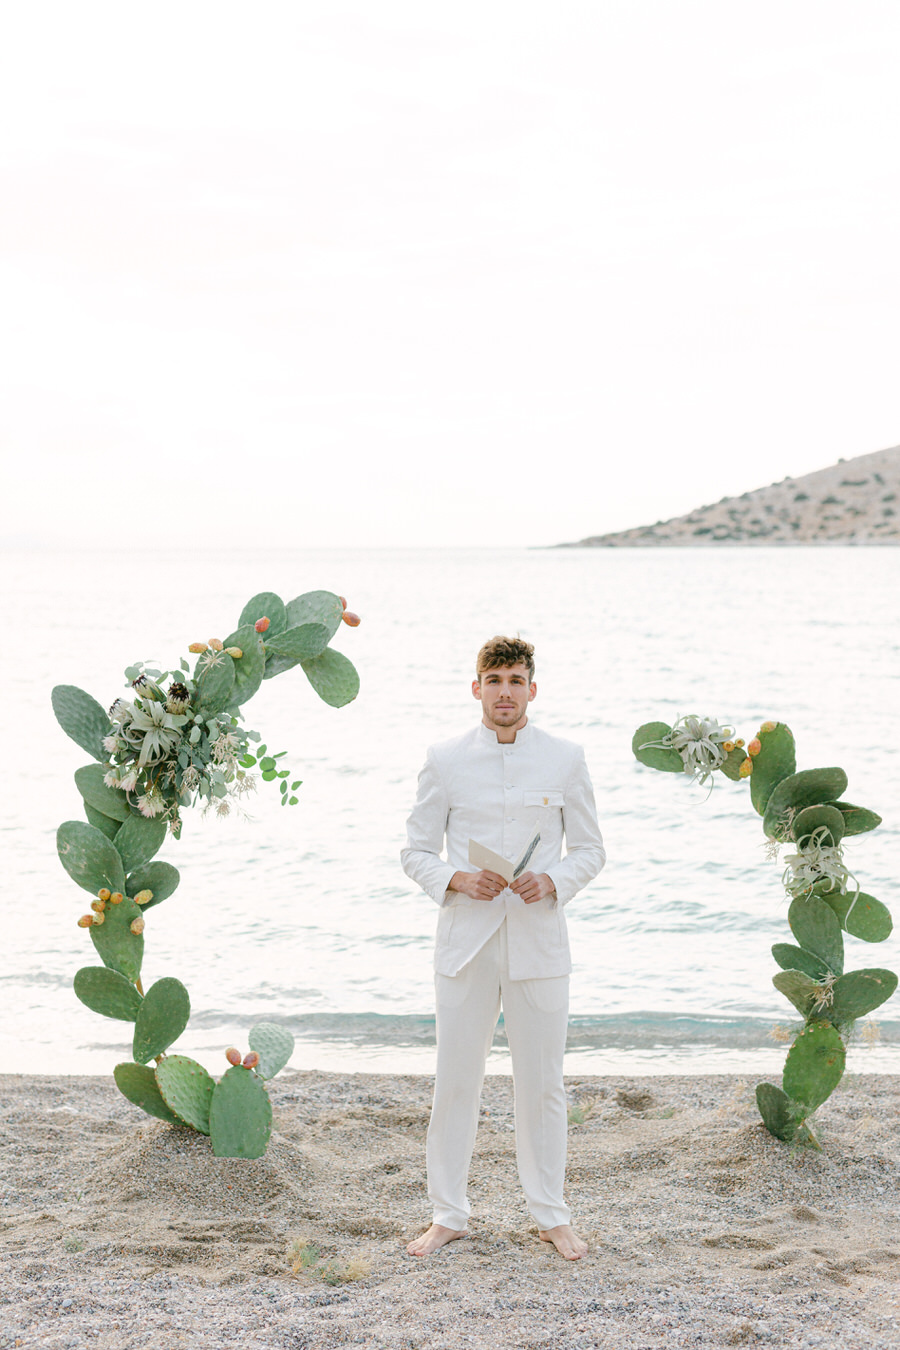 Airplants and Coral Sculpture Wedding at Athens Riviera by Fiorello Photography